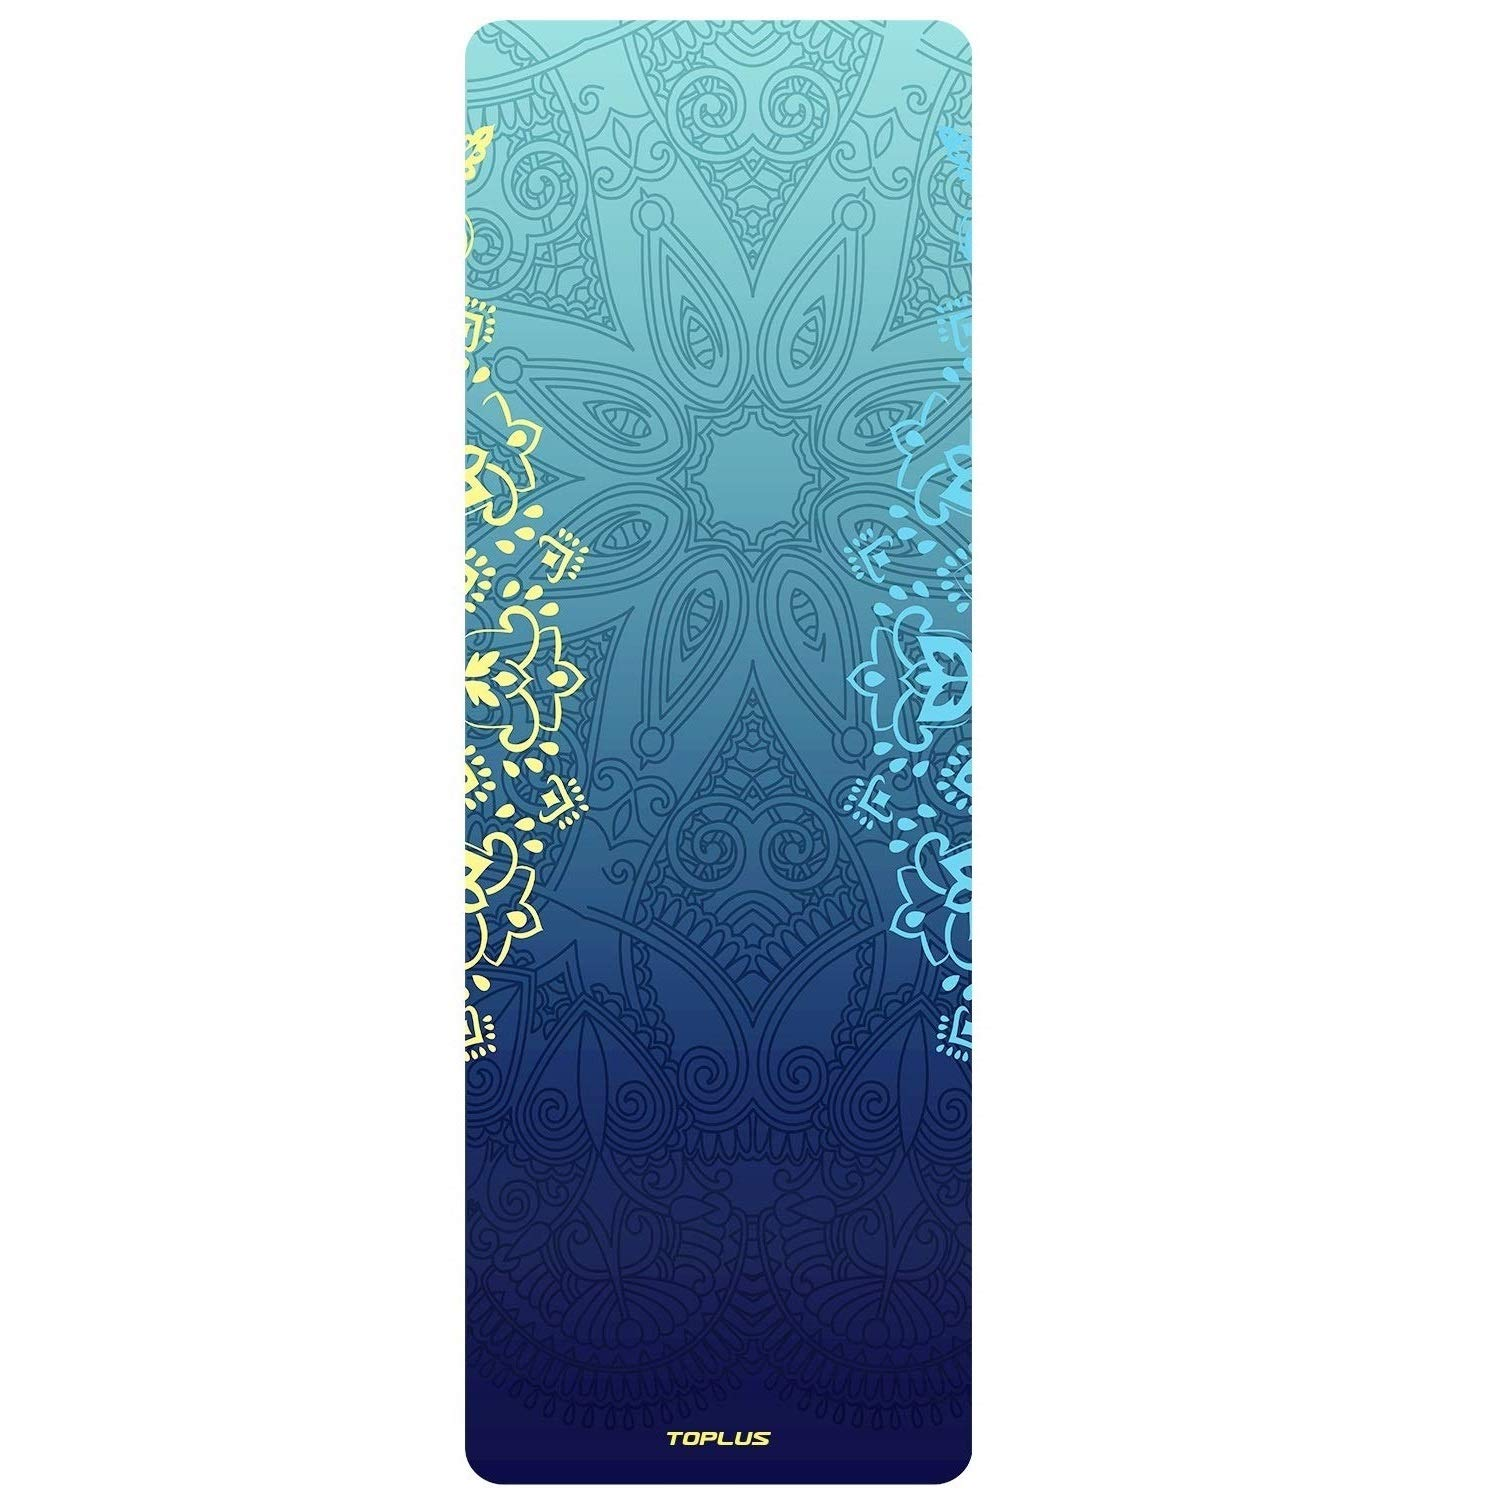 TOPLUS Yoga Mat - Luxury Designer Cooperated - Hot Yoga Mat - Sweat Absorbent Non Slip, Natural Suede Exercise & Fitness Mat for Yoga, Pilates and Floor Exercises, Coming Box